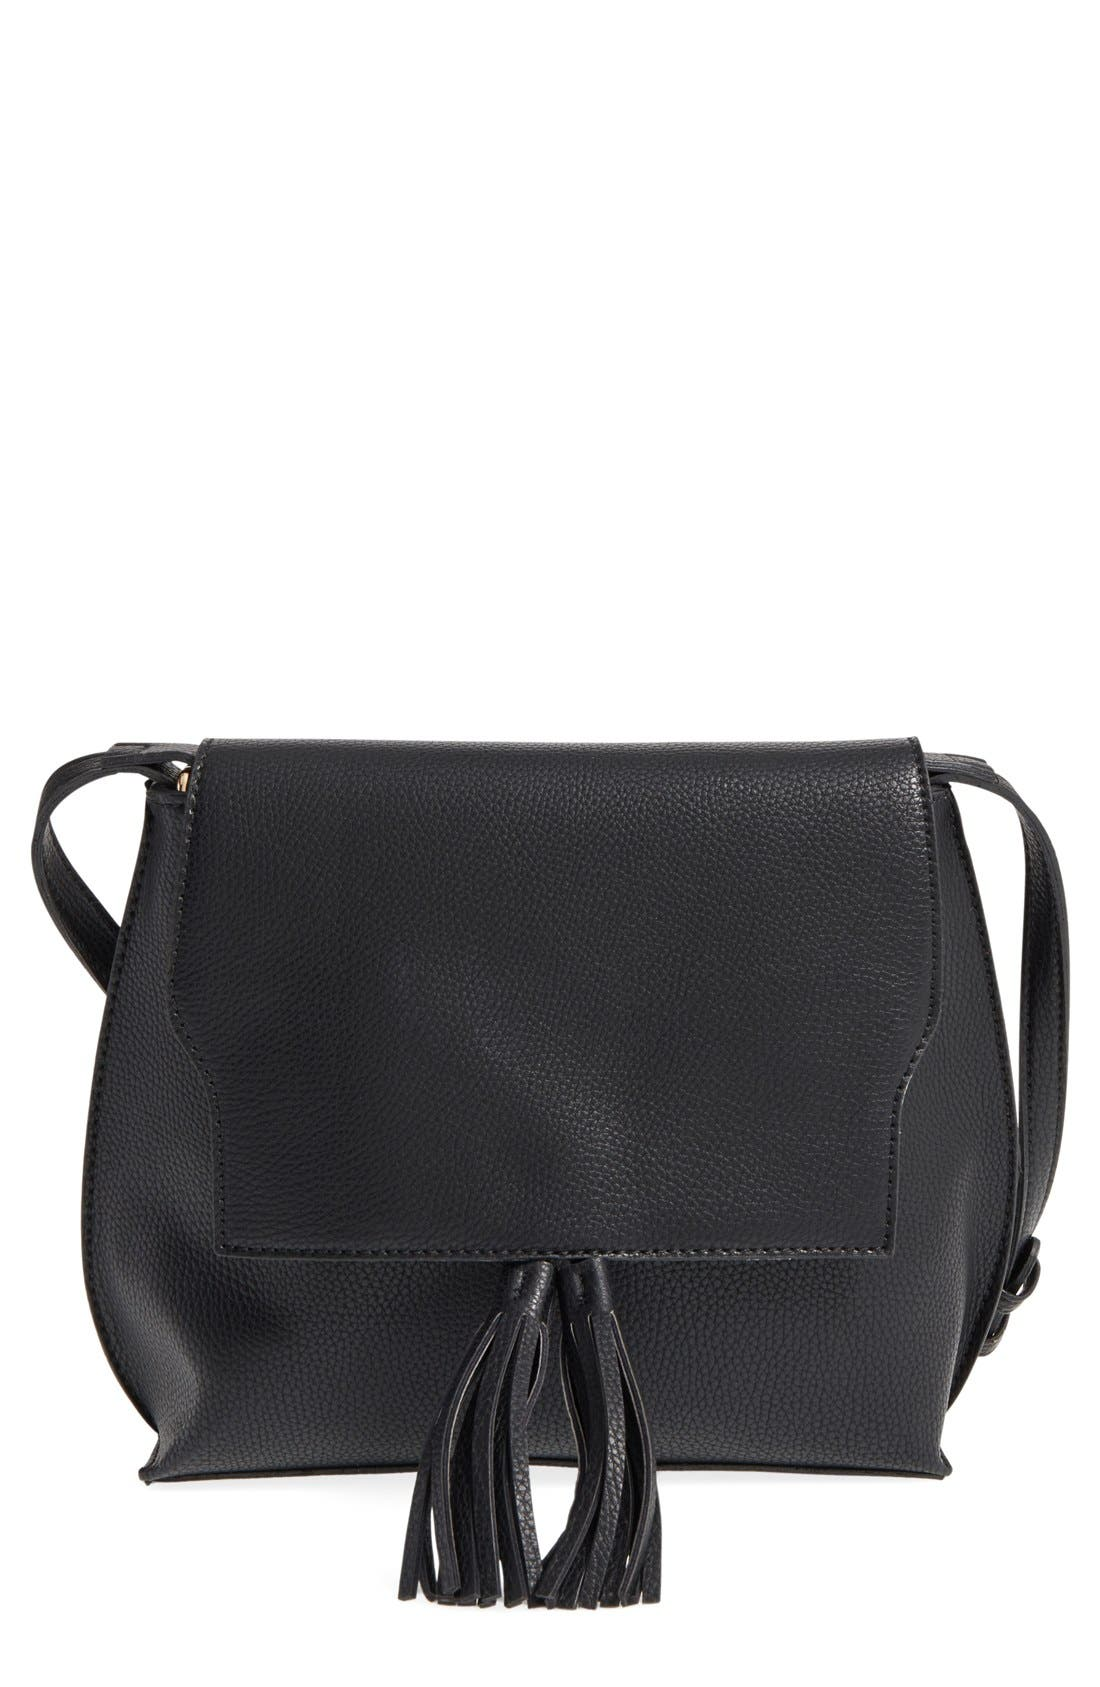 Sole Society Tassel Faux Leather Crossbody Bag